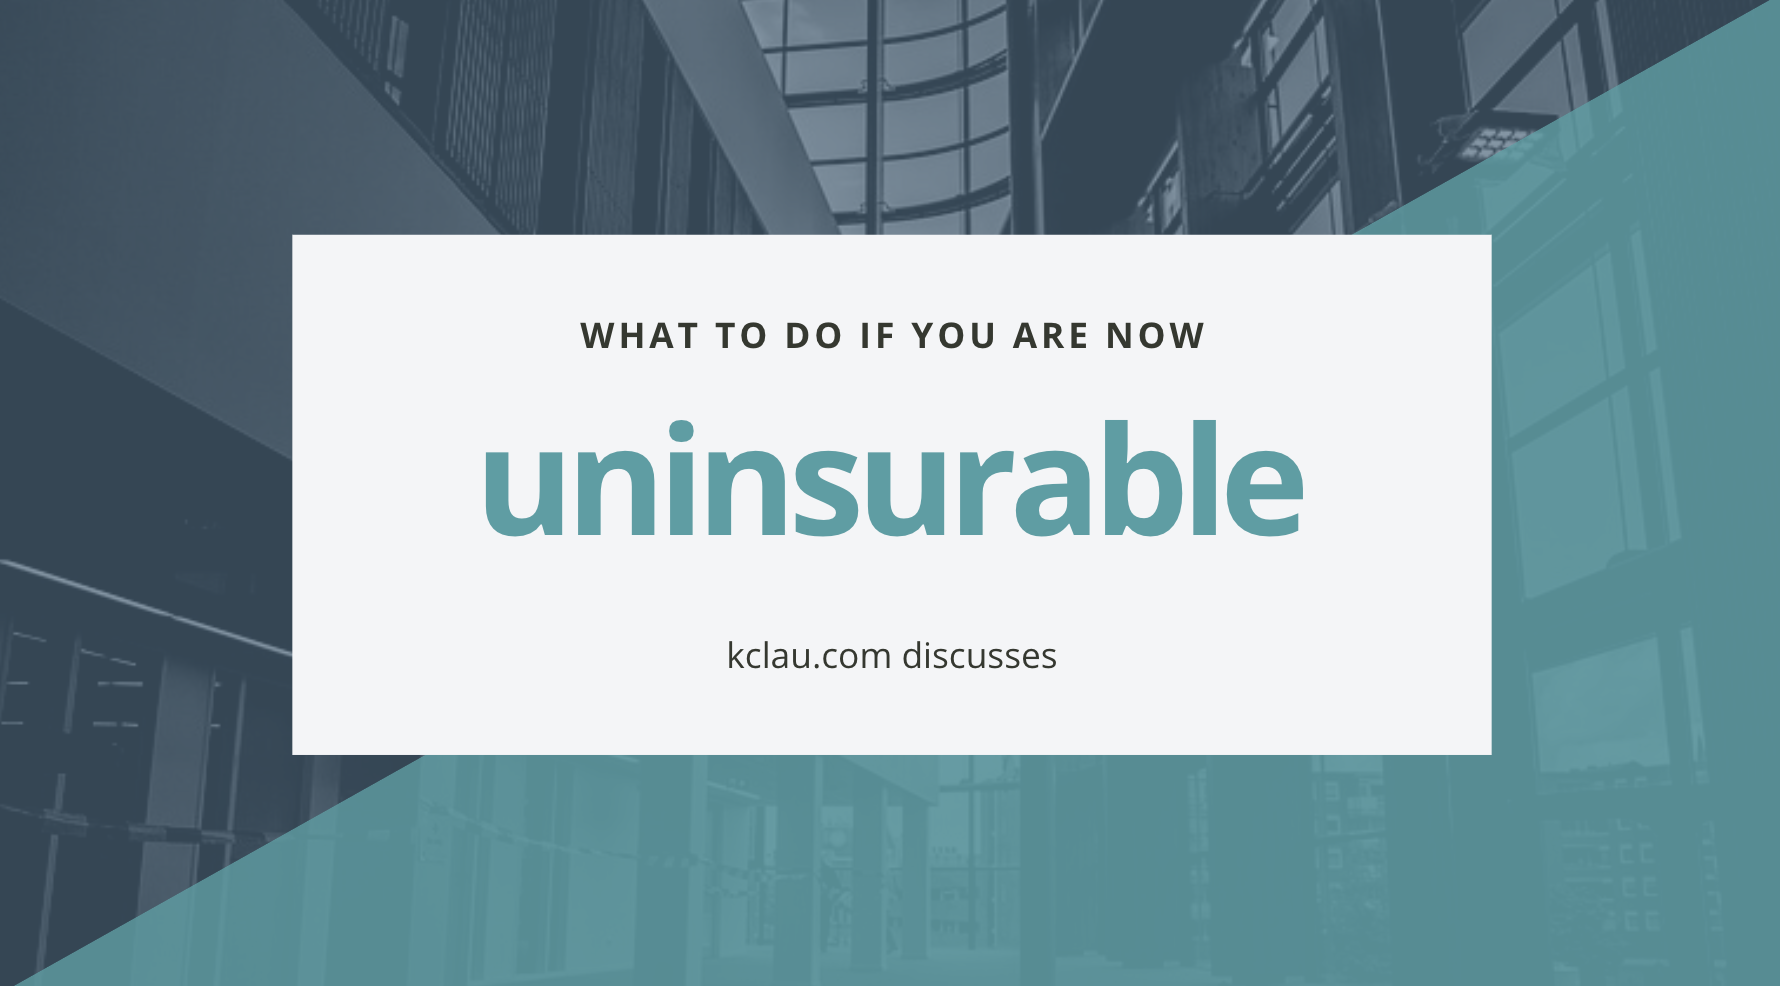 What are Your Options for Medical & Life Insurance Coverage if you are 'Uninsurable'?